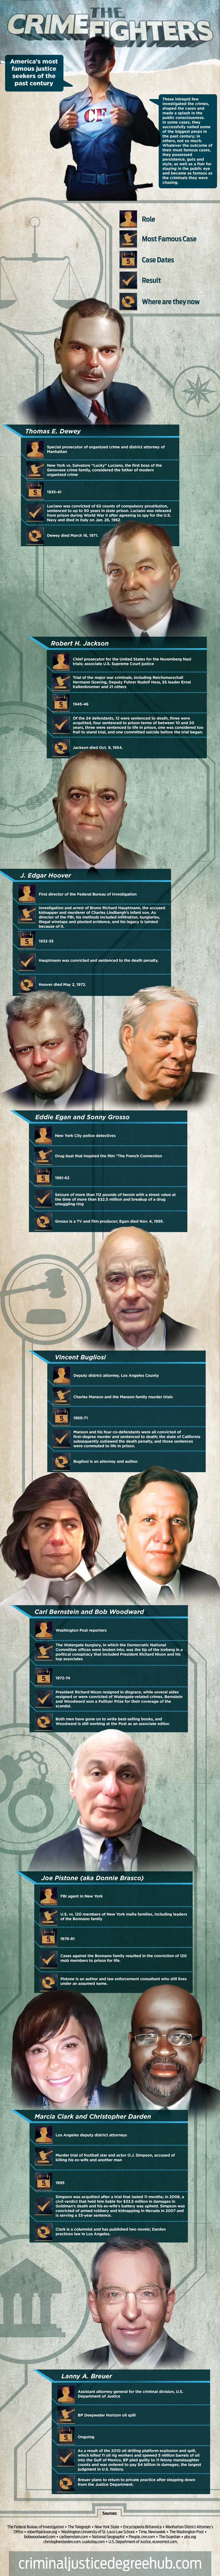 American Justice Advocates-Infographic